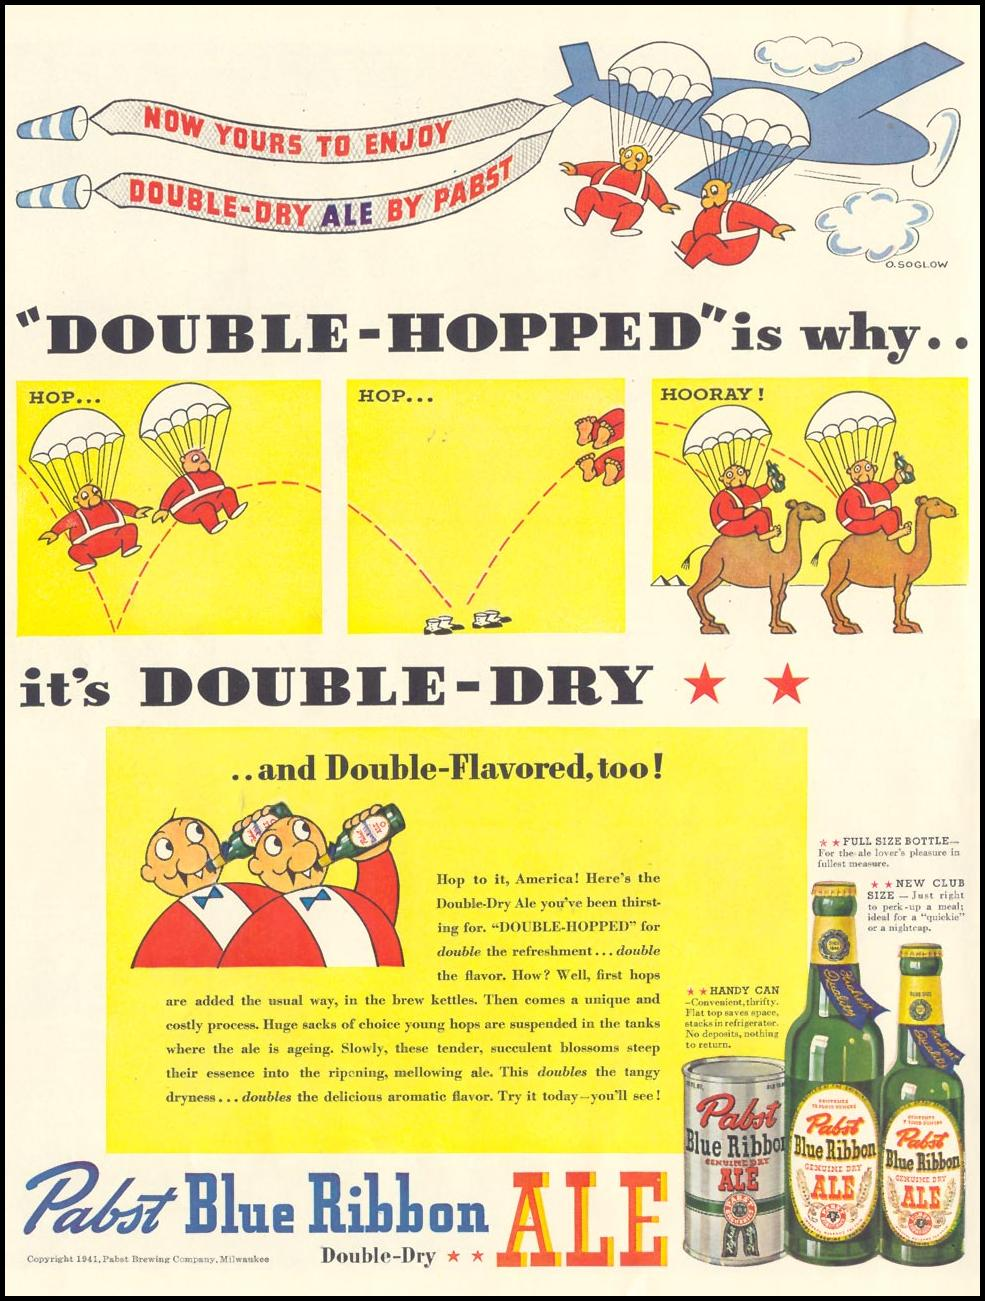 PABST BLUE RIBBON DOUBLE-DRY ALE